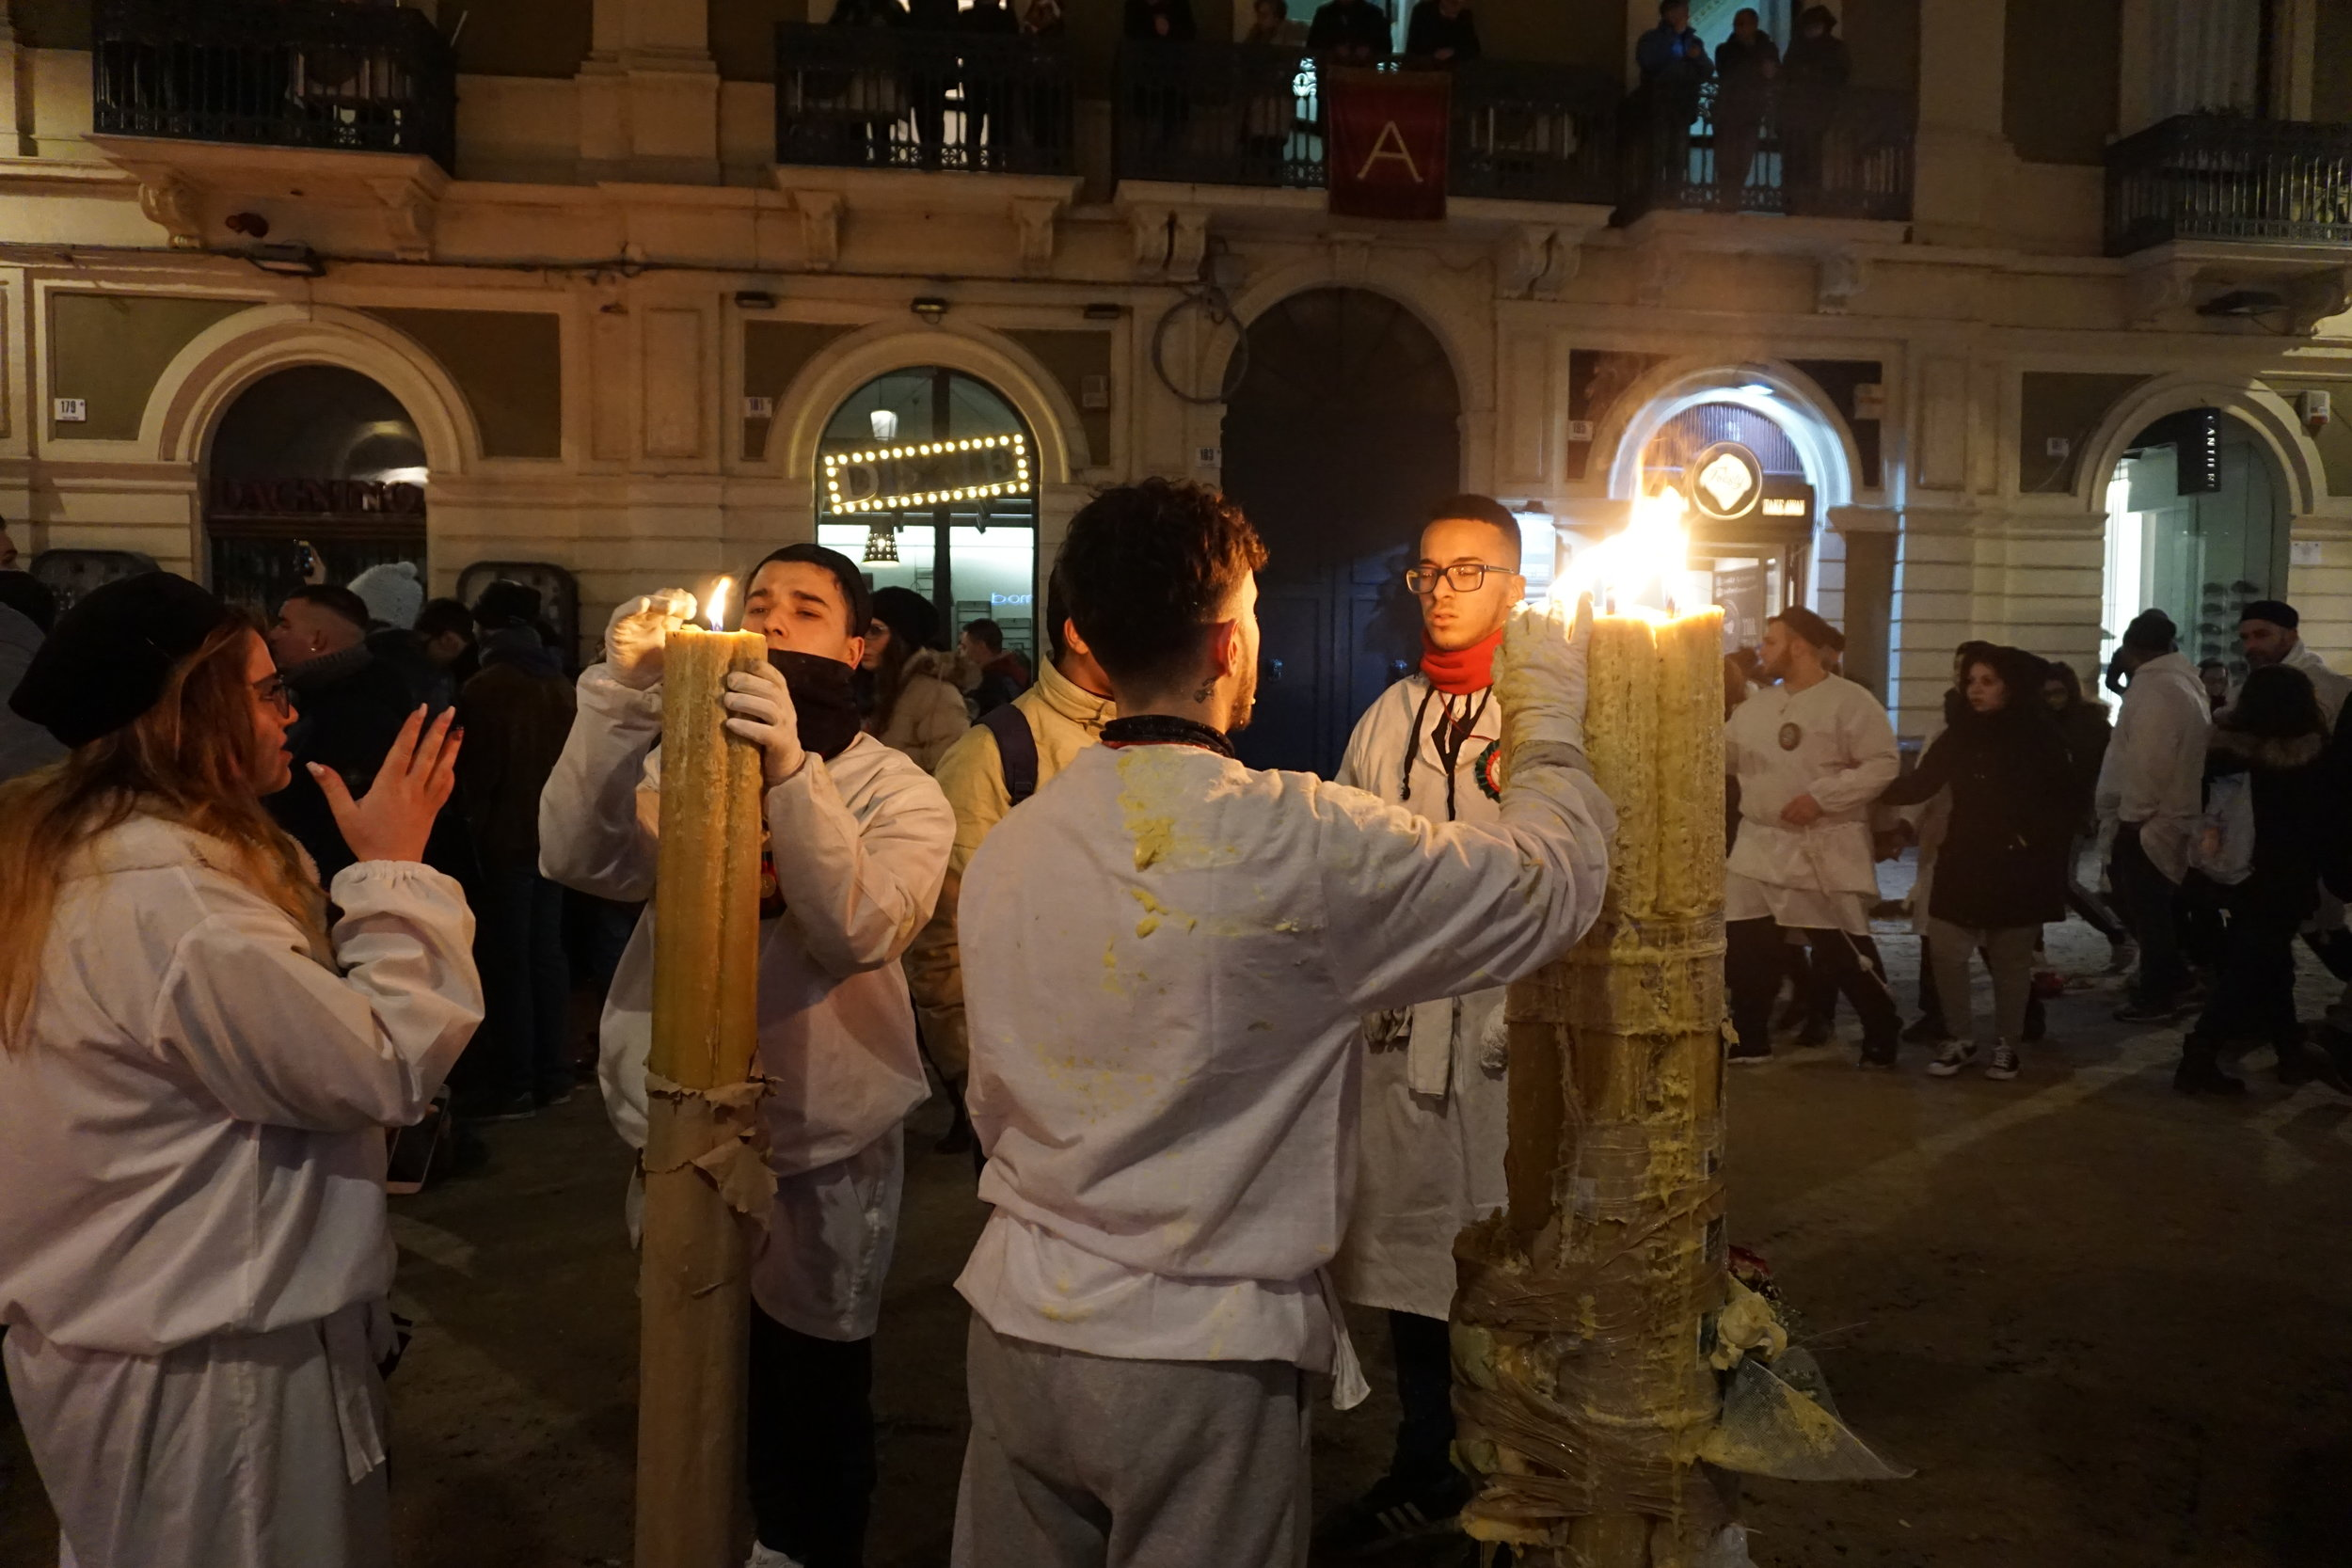 Devotees light and carry candles throughout the streets. Some say the larger the candle the bigger miracle St. Agata has brought into their life.  PICTURE BY TRAVEL ITALIAN STYLE